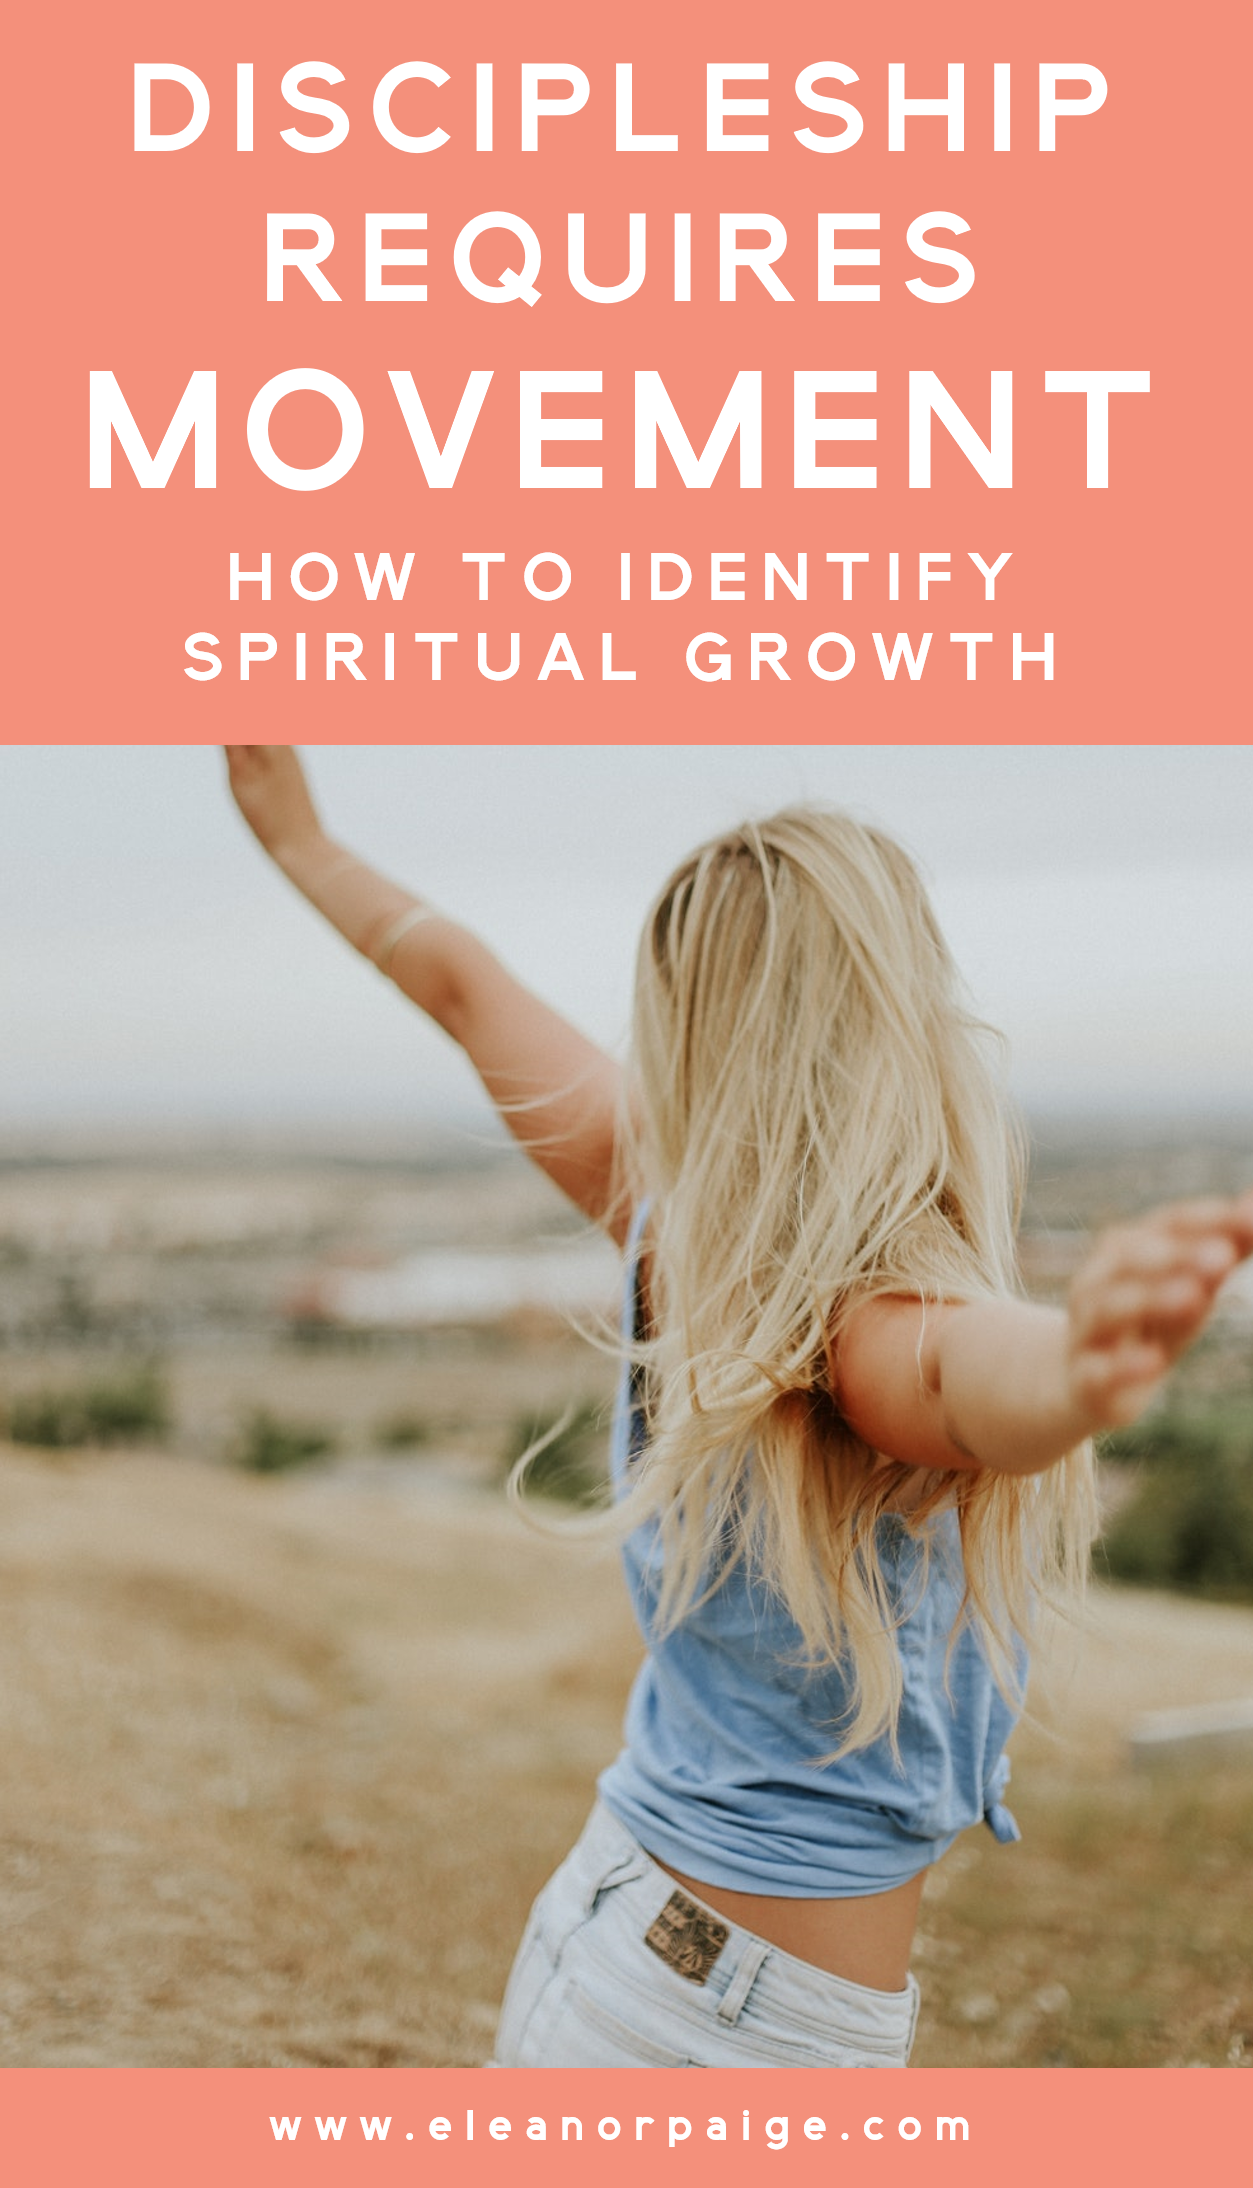 Discipleship Requires Movement. How to Identify Spiritual Growth.